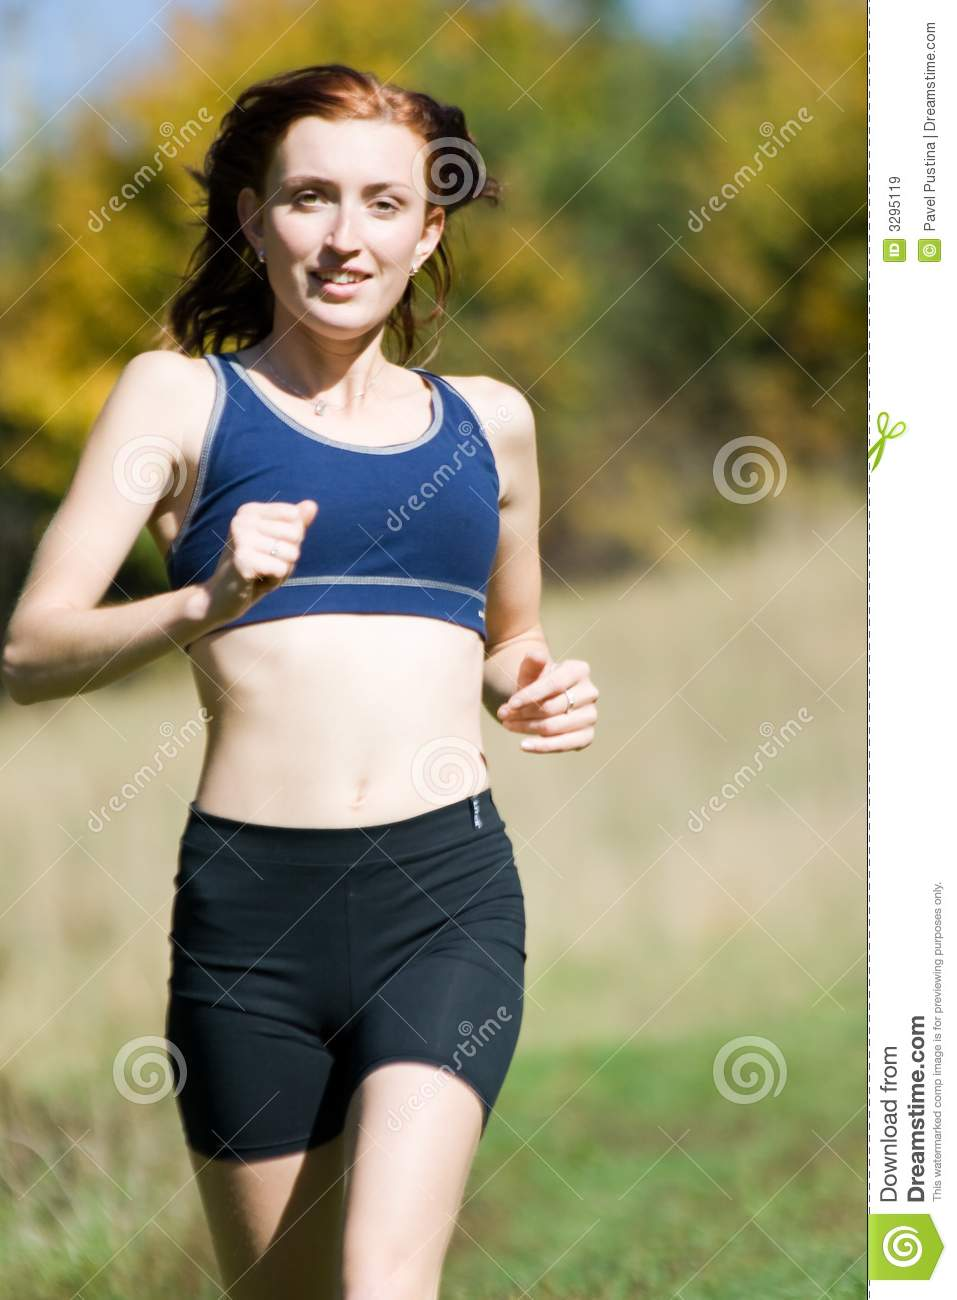 Woman and running